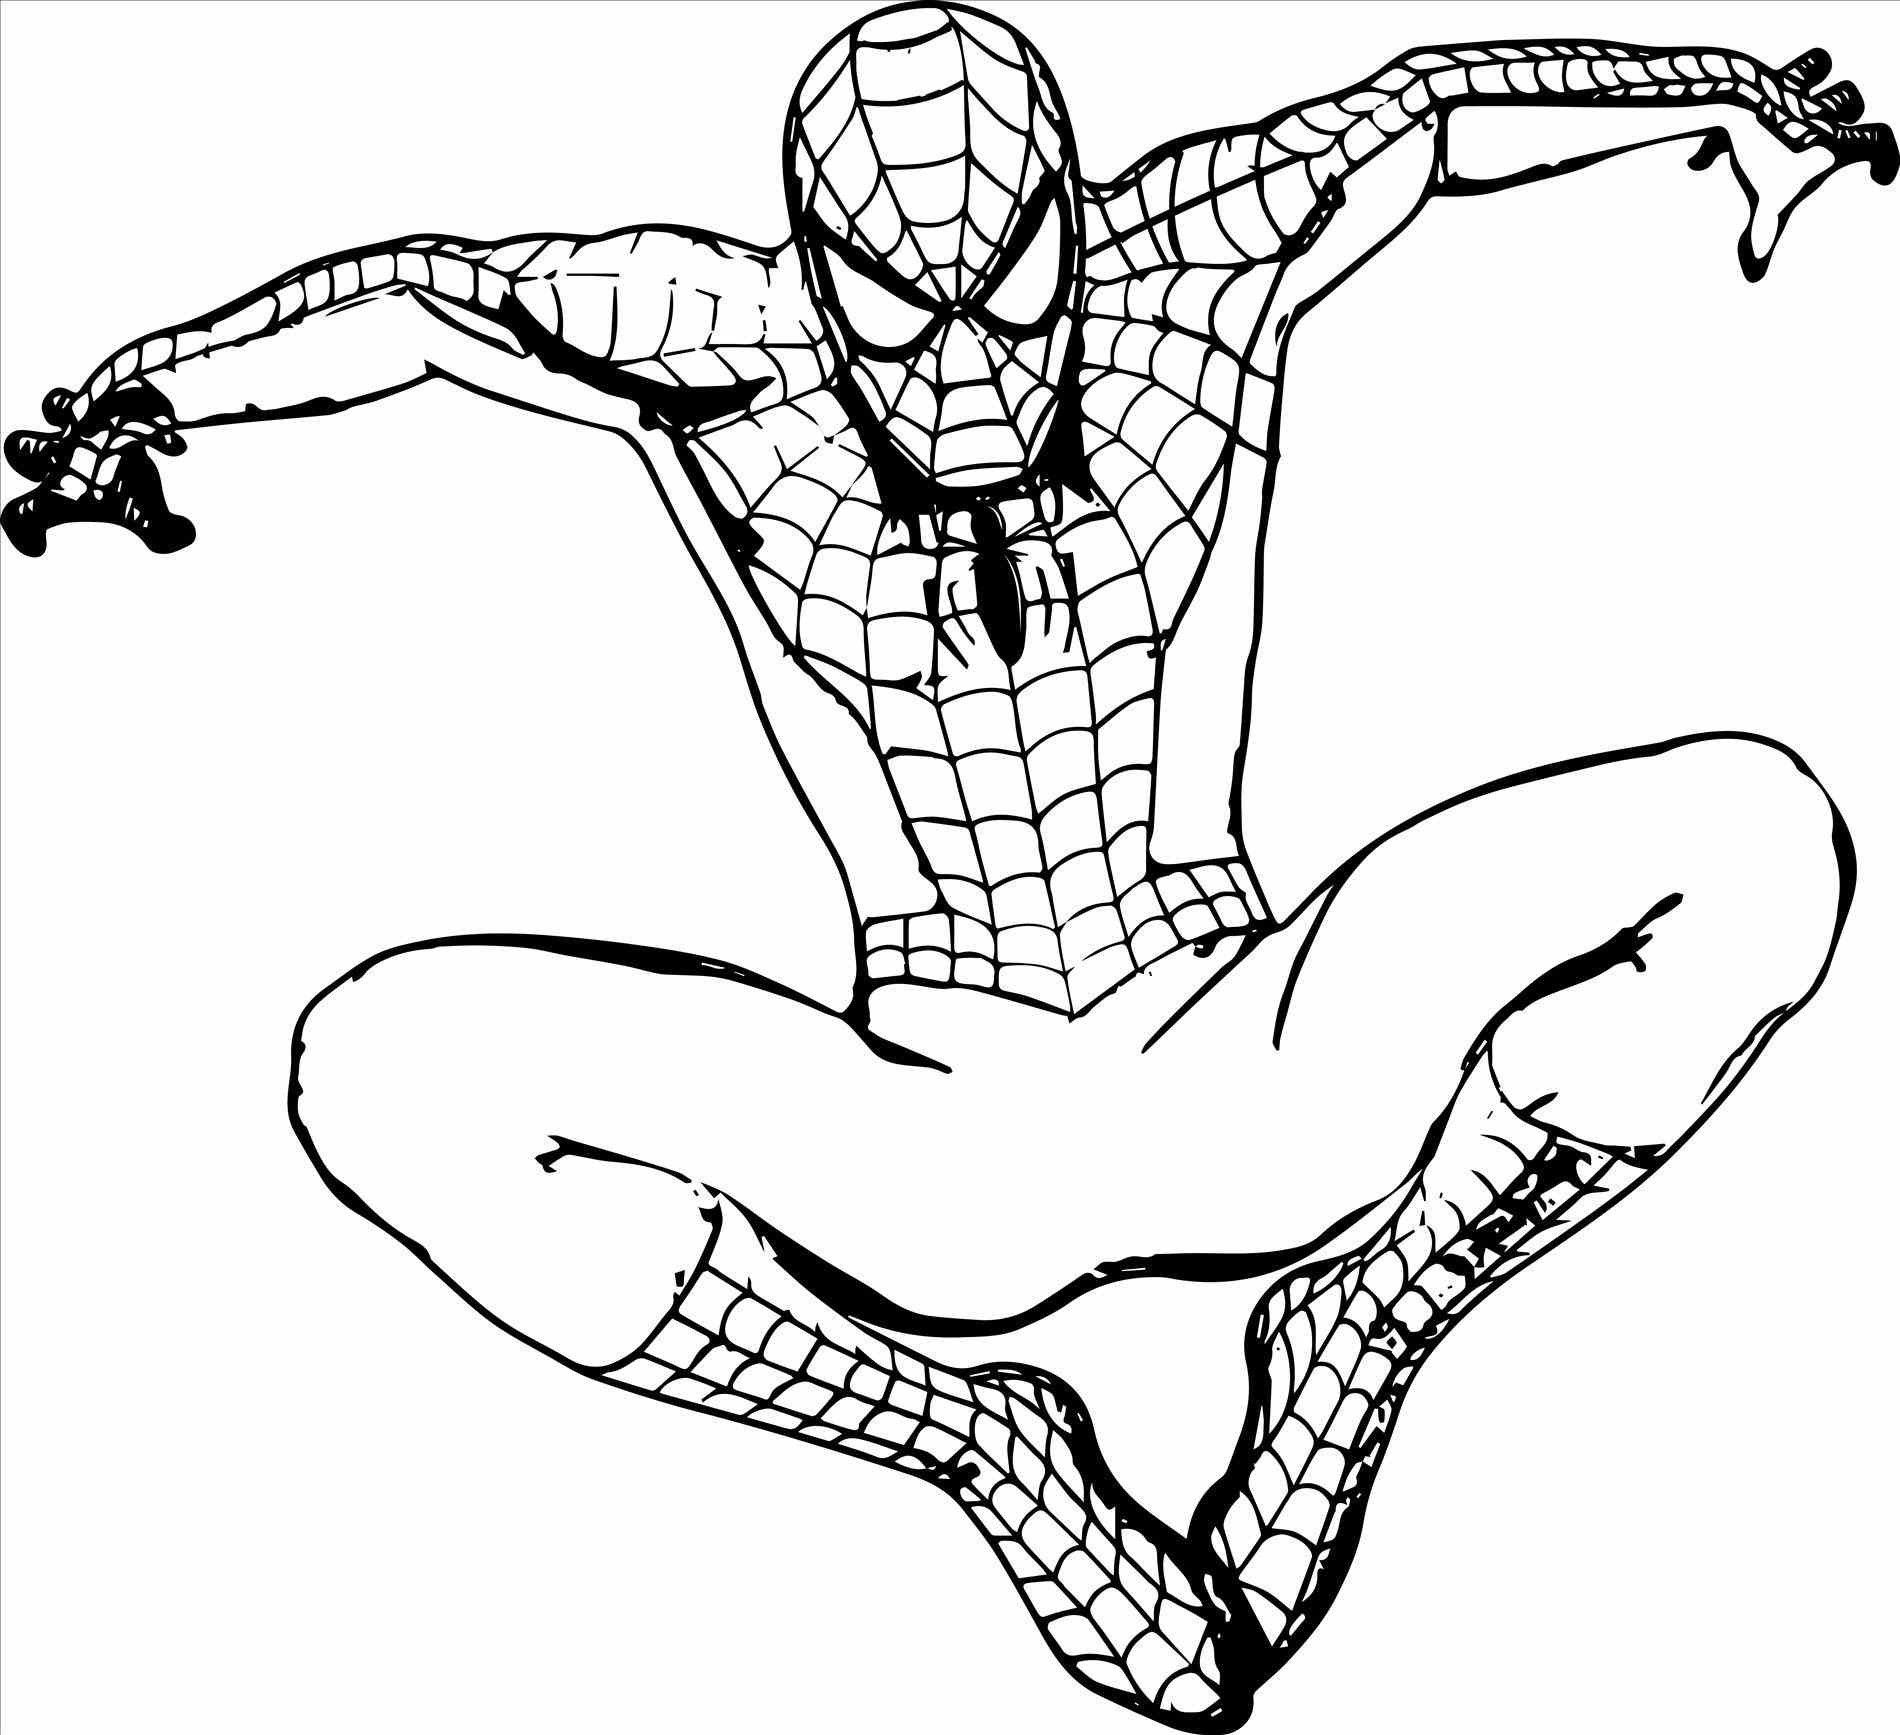 10 Spider Man Home Ing Lego Coloring Pages Spider Man Verse Coloring Pages Spiderman Cartoon Superhero Coloring Pages Superhero Coloring Spiderman Coloring